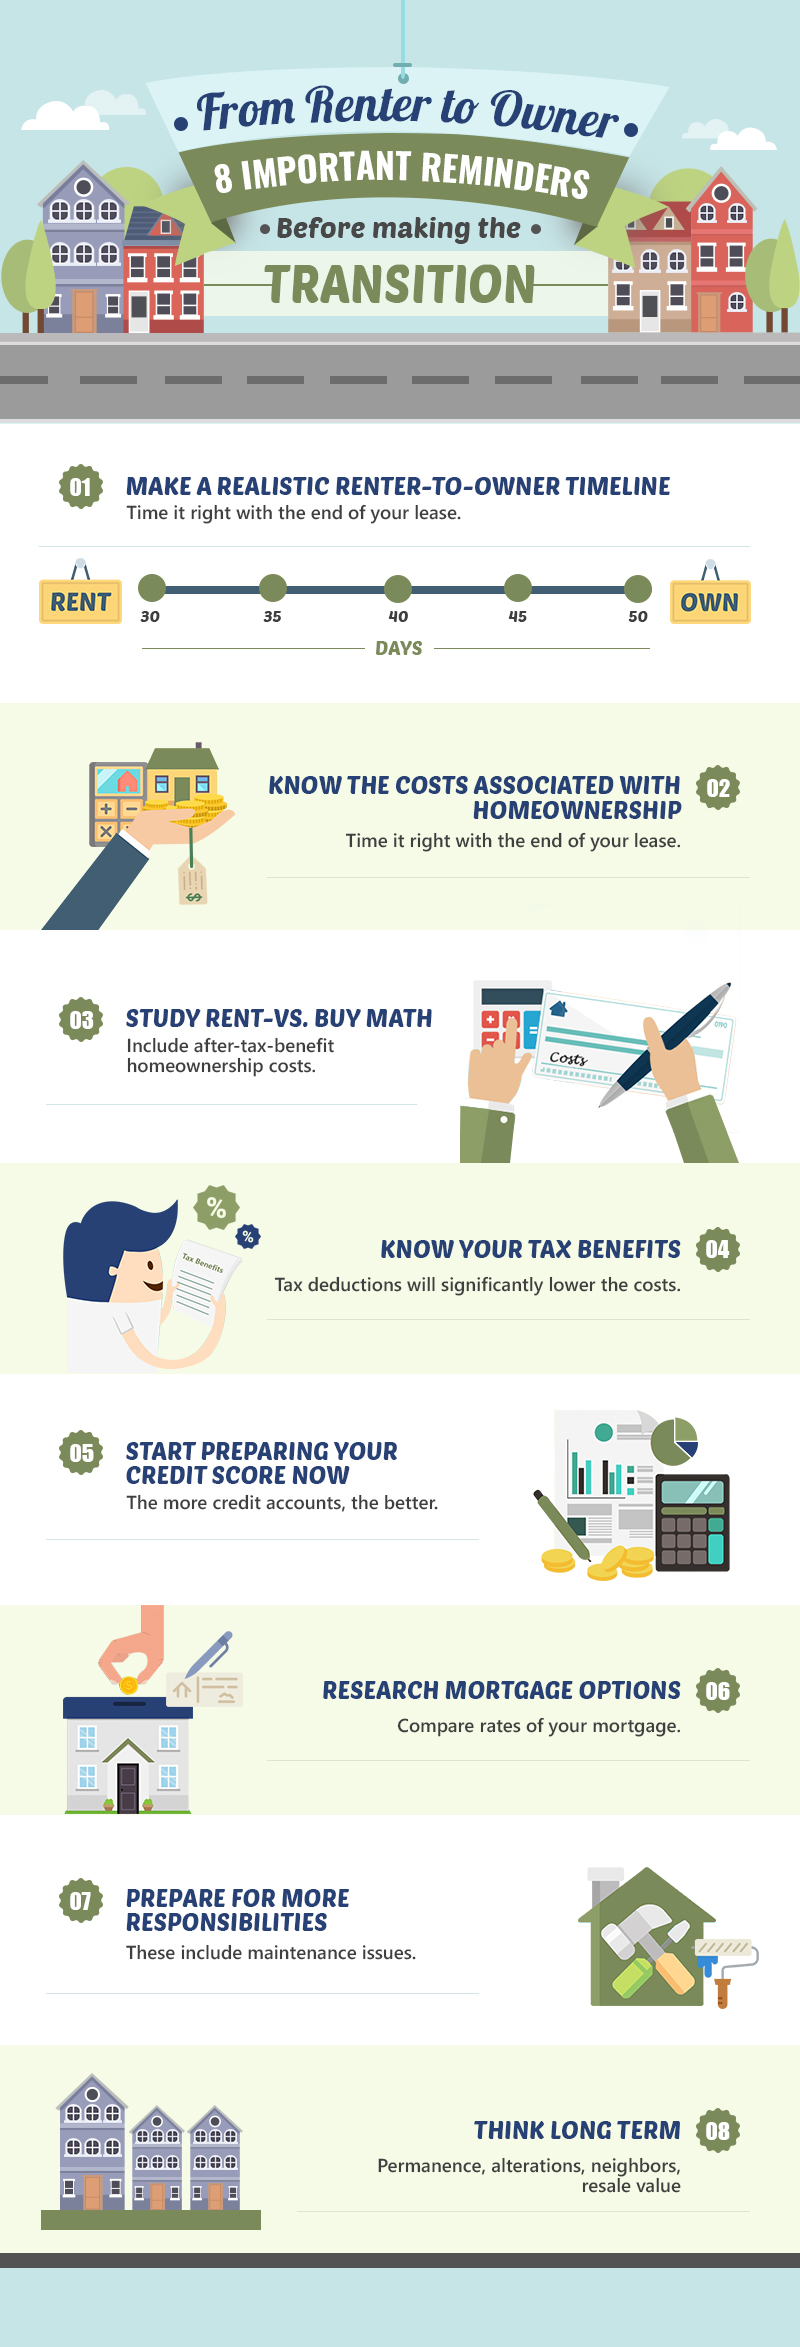 From Renter To Owner 8 Important Reminders Before Making The Transition.jpg